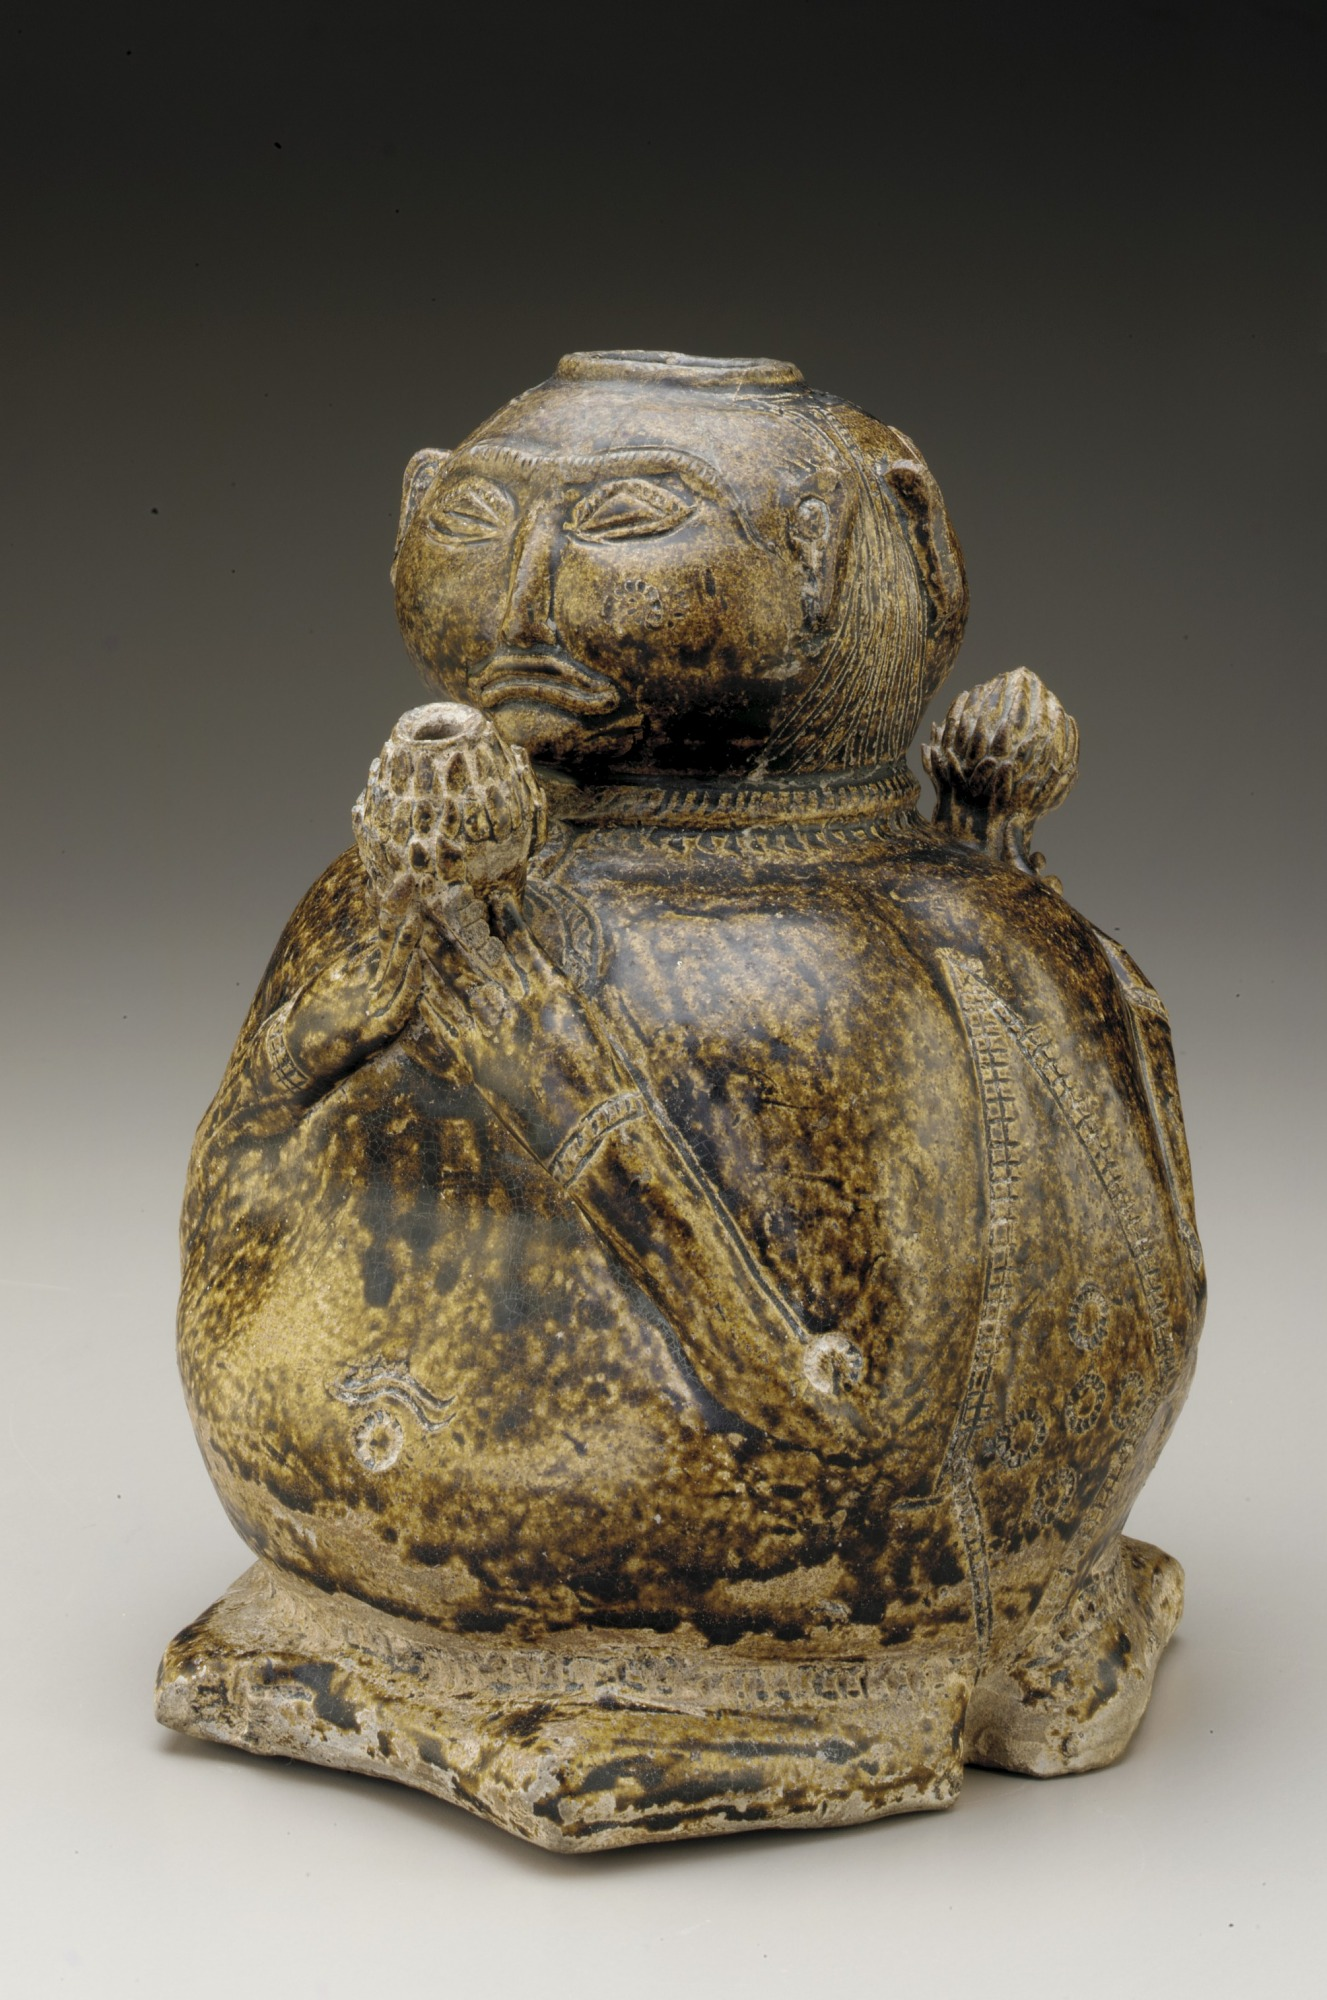 : Vessel in the form of two human figures